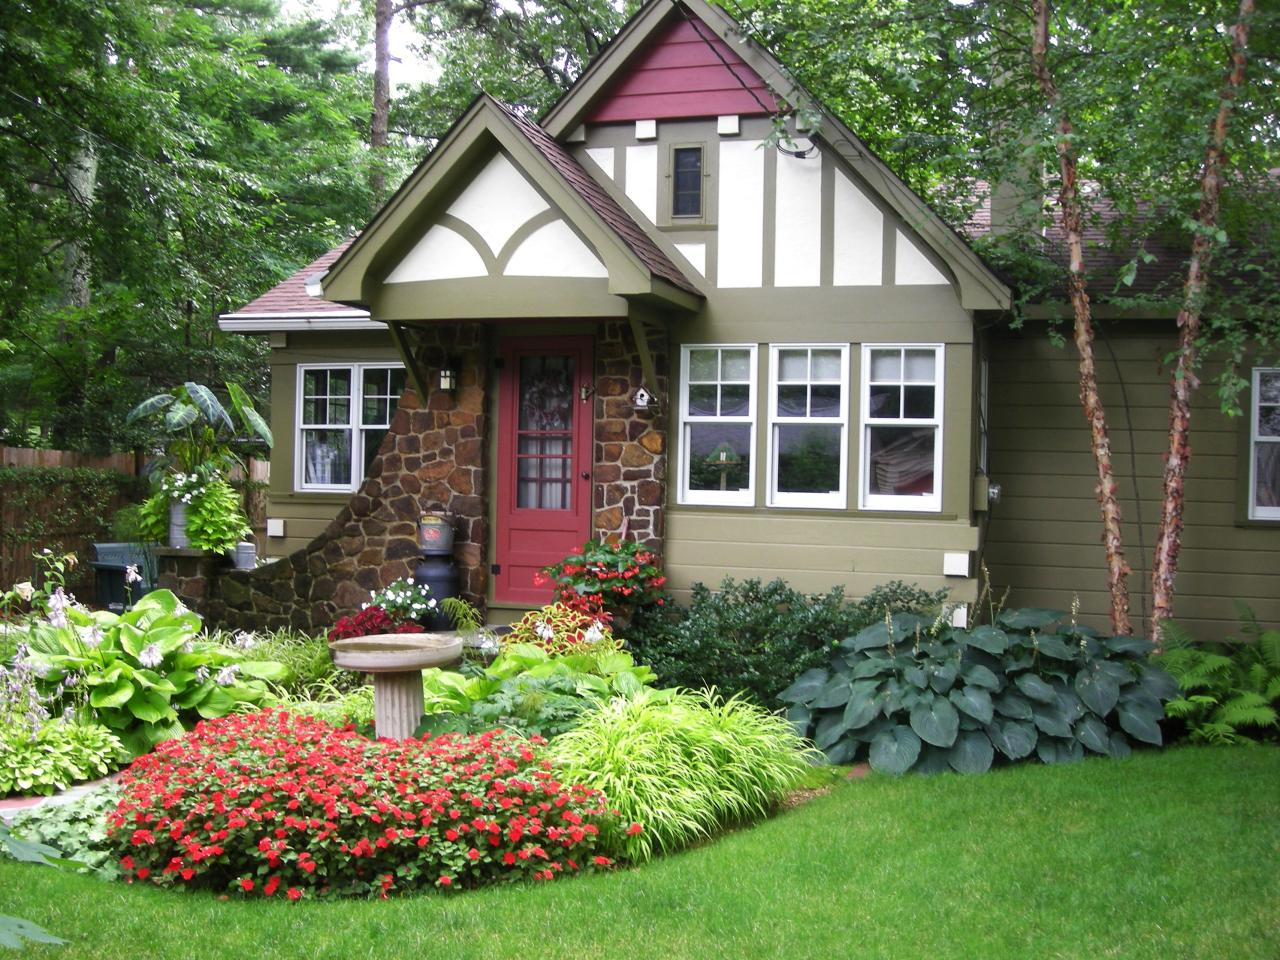 Photos hgtv for Home landscaping ideas